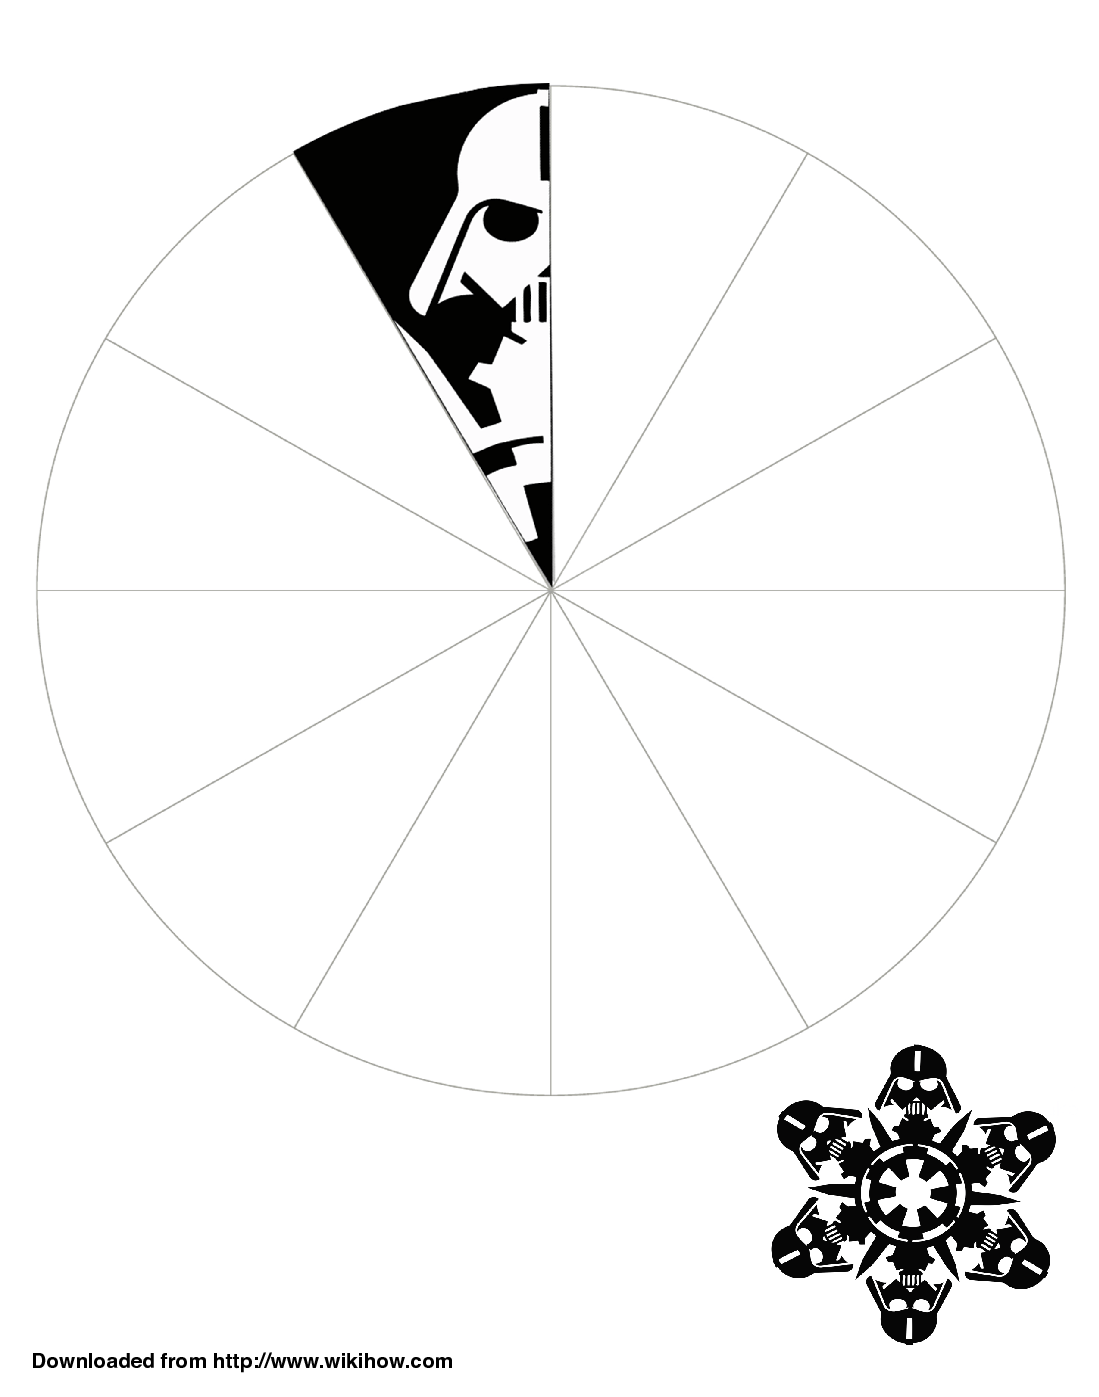 star wars snowflake template free  Printable Darth Vader Snowflake Template - wikiHow ...